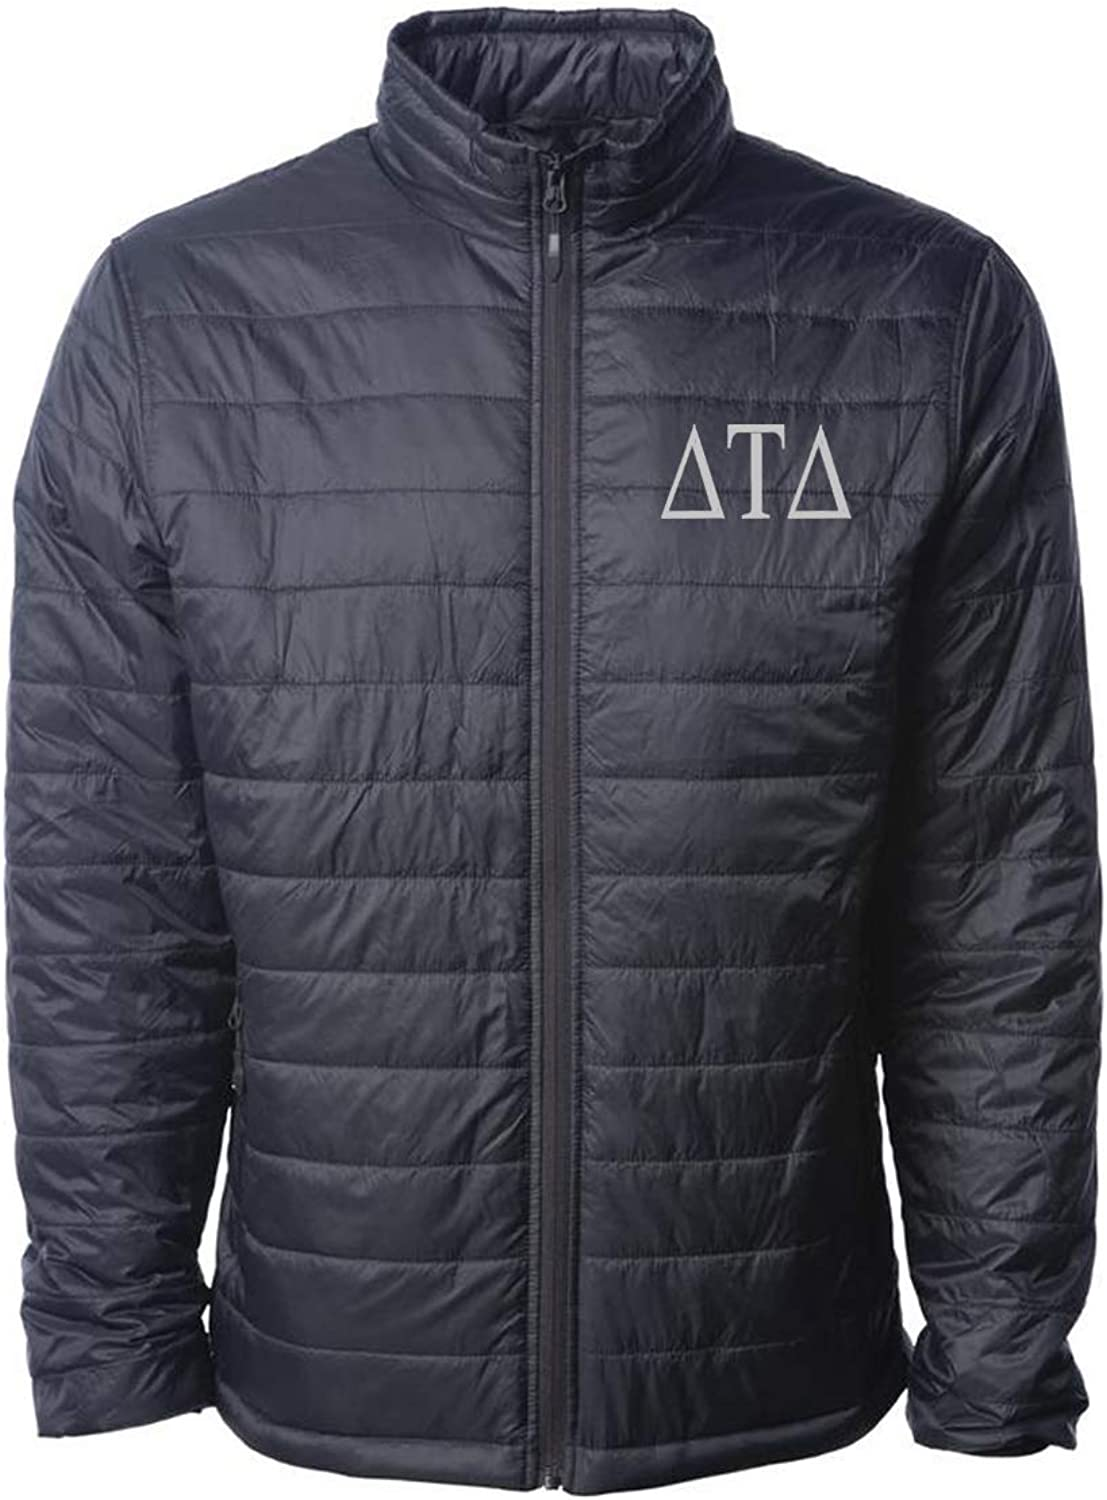 Delta Tau Delta Puffy Jacket